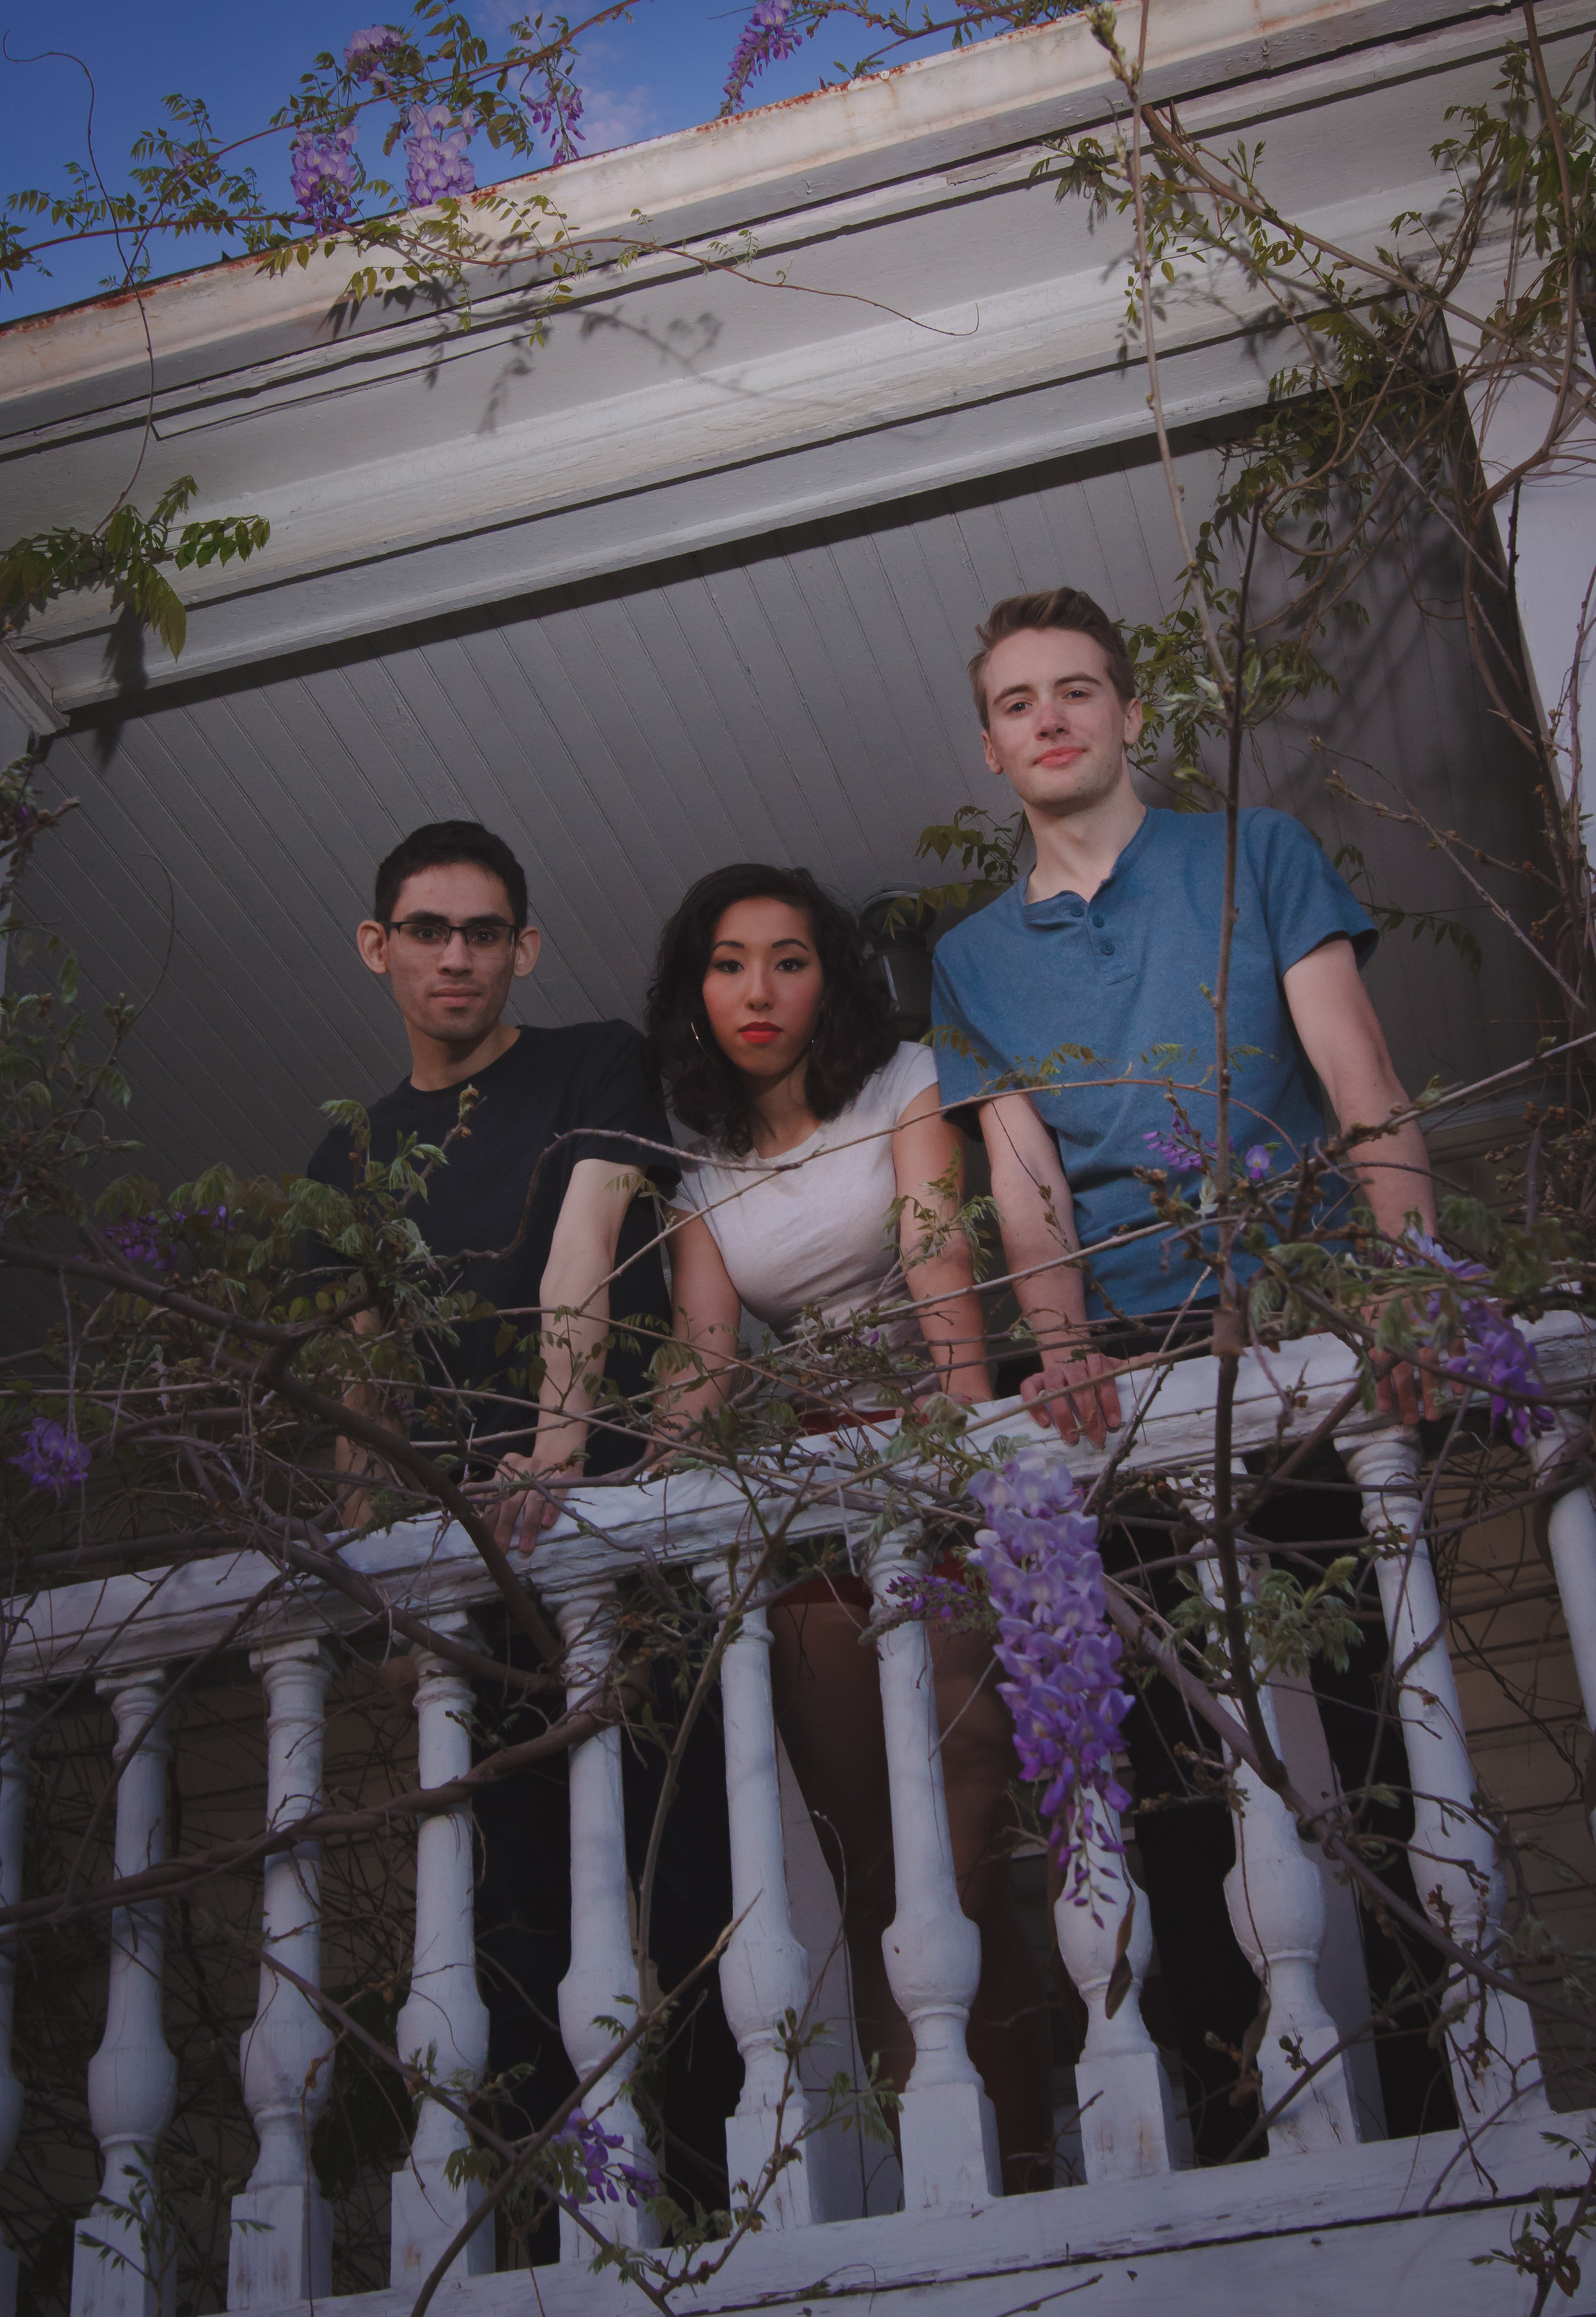 Cinema Hearts, on the house's tangled front porch. Photo by Mauricio Cimino.